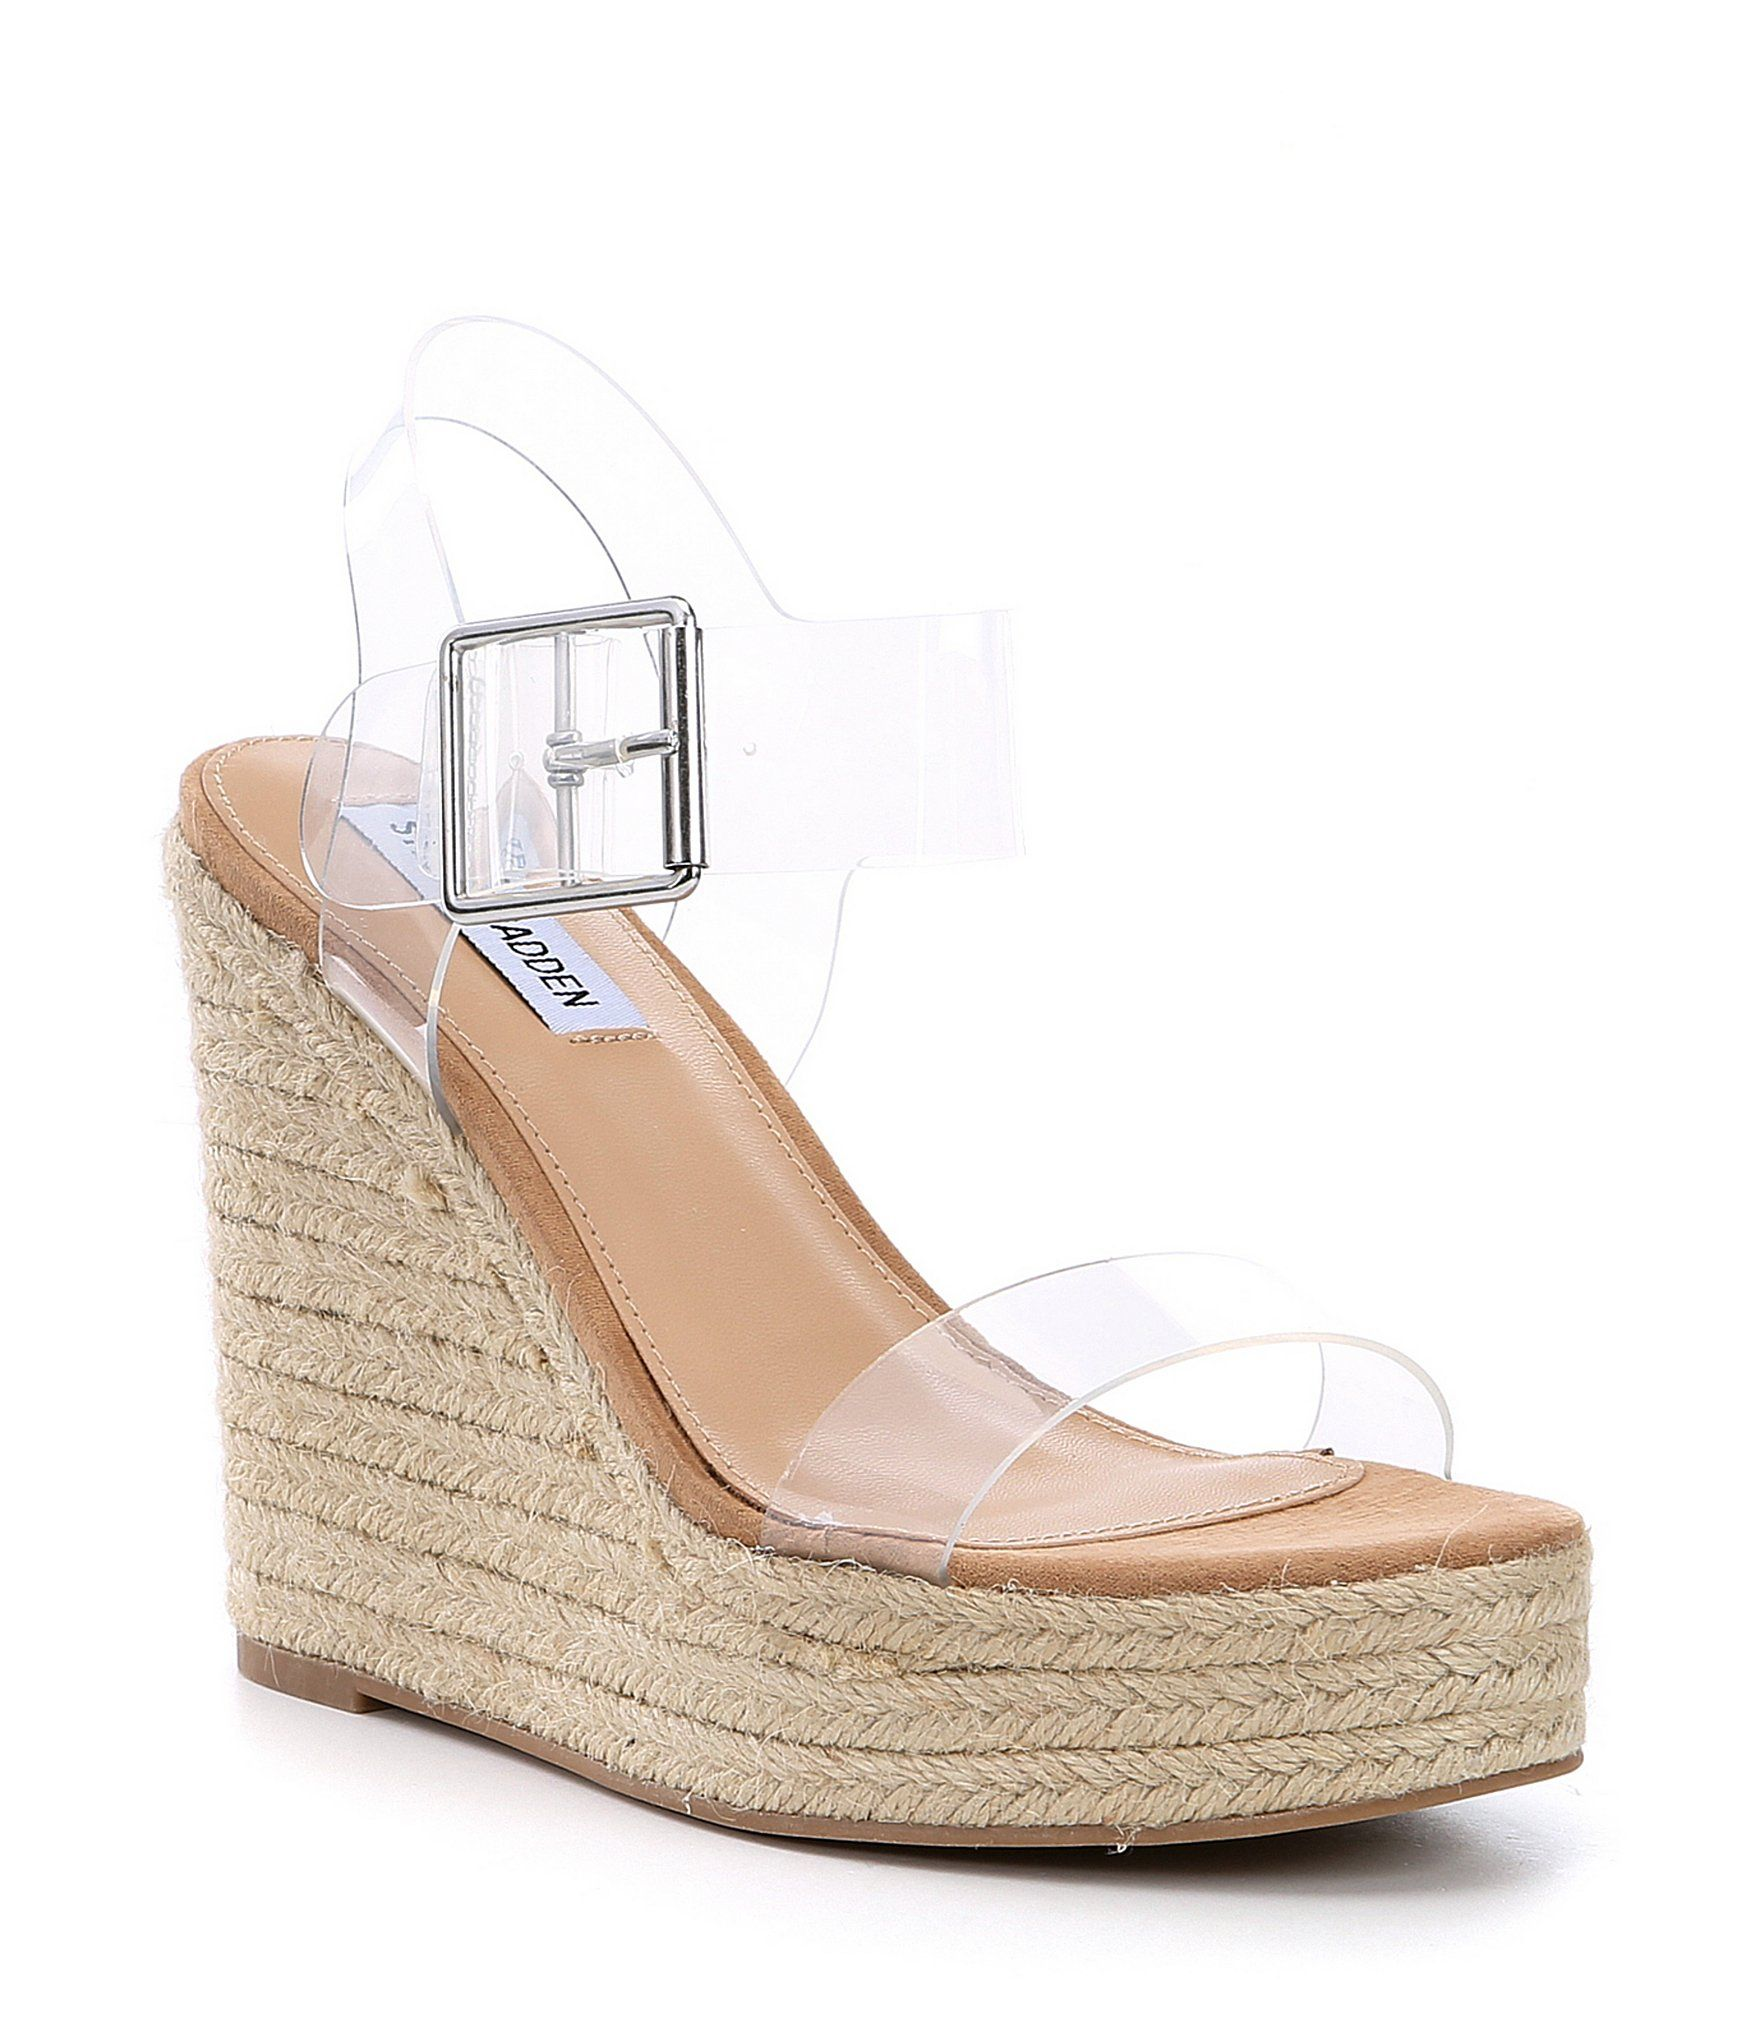 genio capacidad grieta  Steve Madden Splash Clear Transparent Banded Espadrille Wedge Sandals  #Dillards | Espadrilles wedges, Espadrilles, Wedge sandals